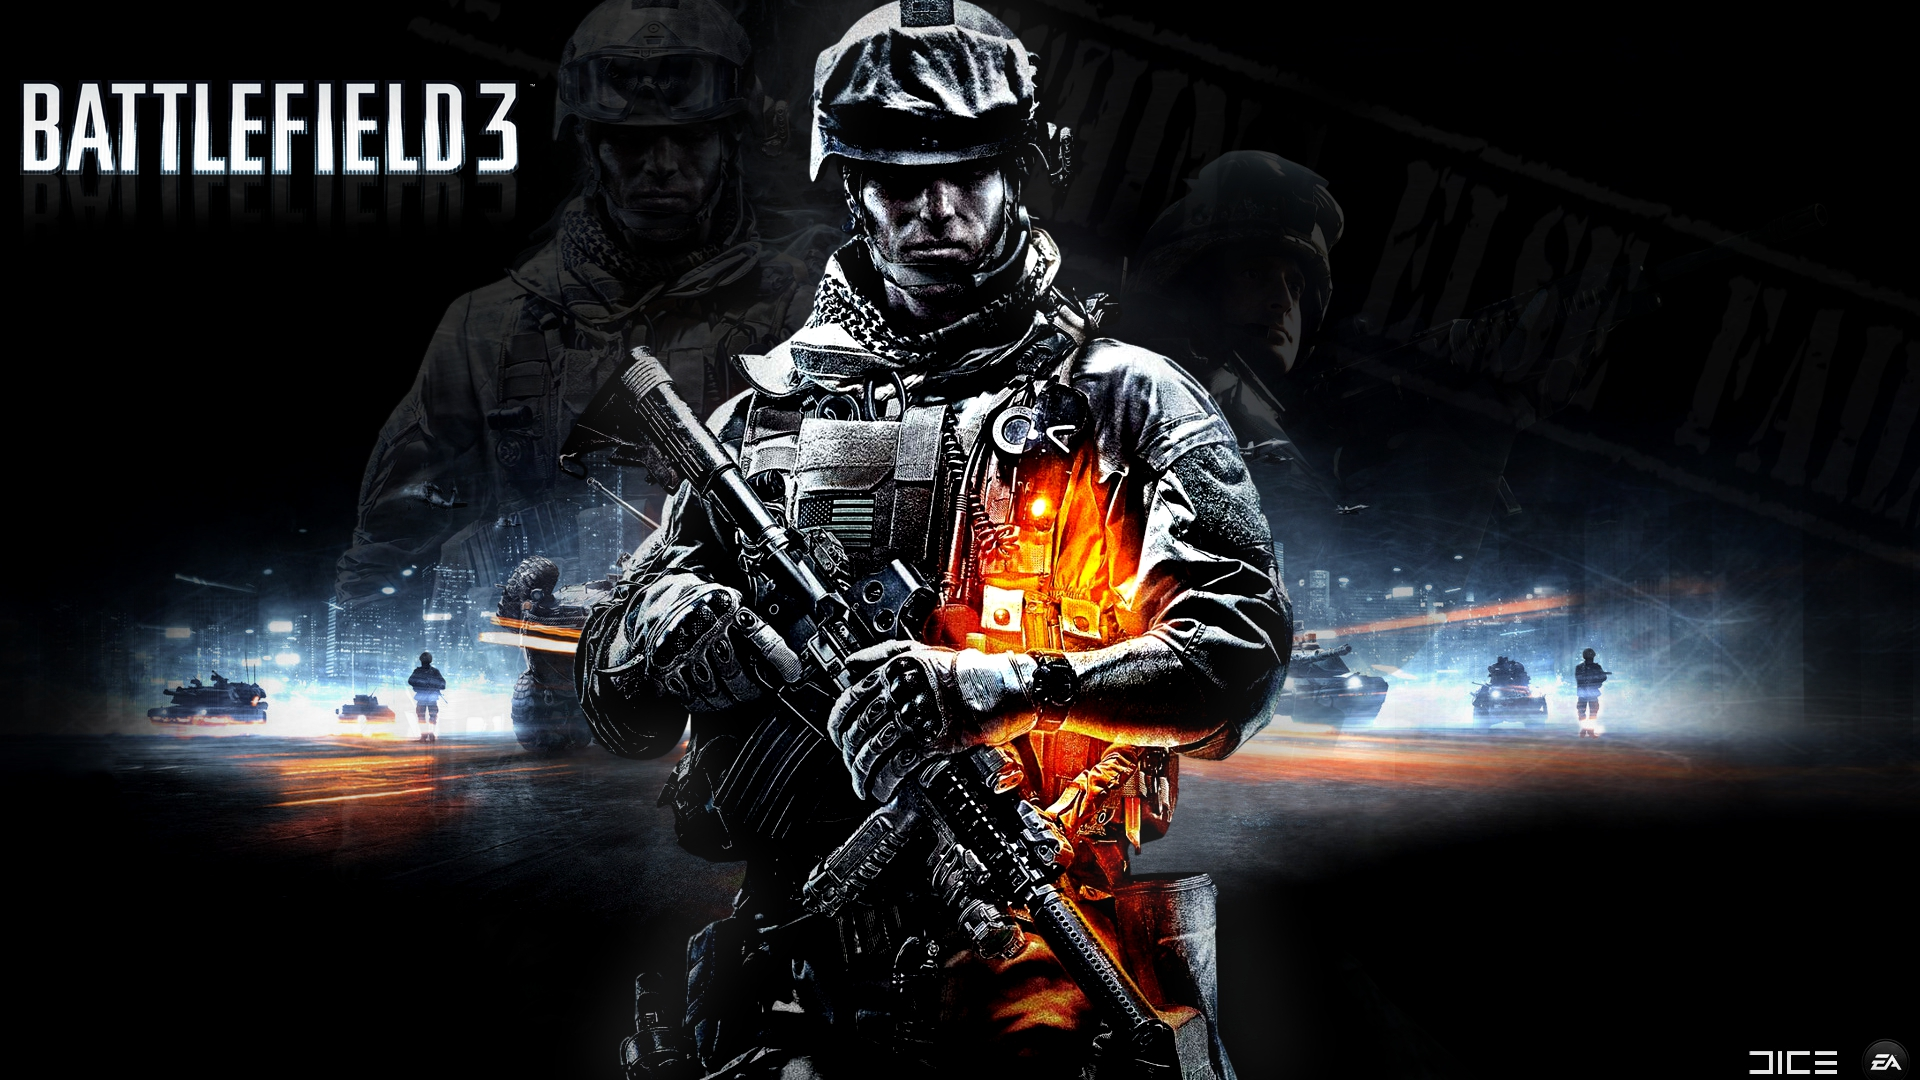 battlefield 3 hd wallpaperpanda39 on deviantart